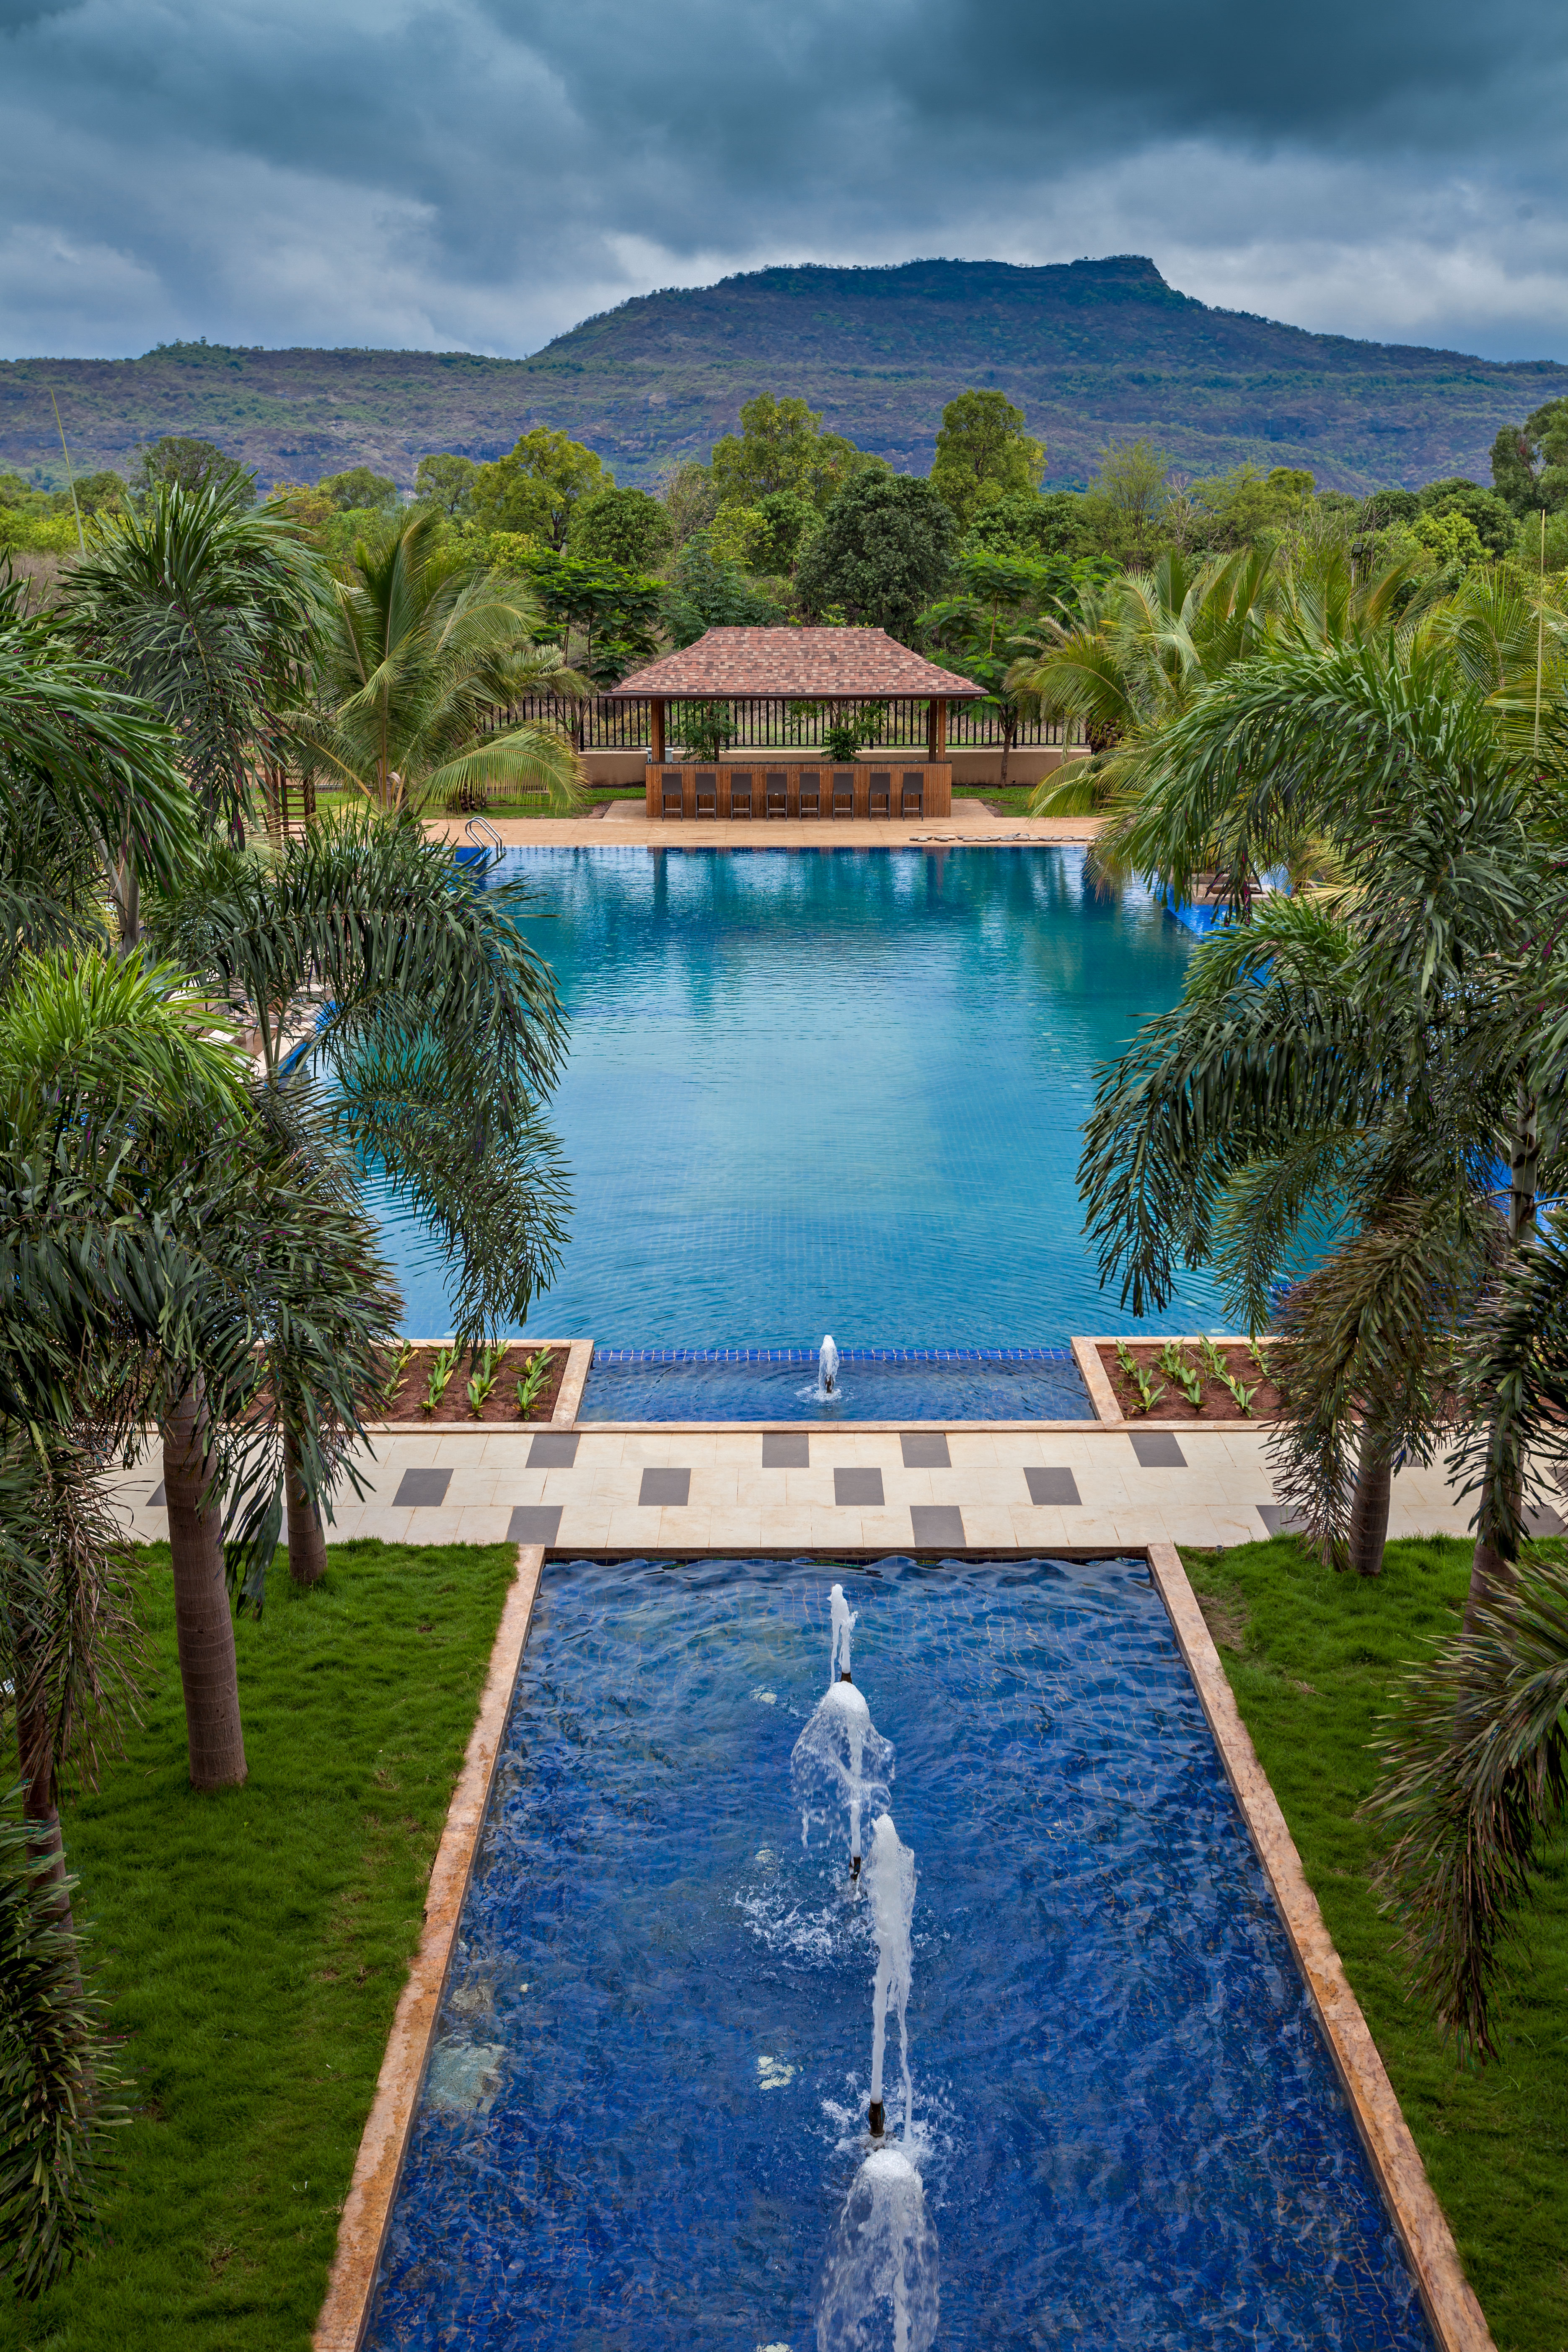 Radisson Blu Opens Its First Resort And Spa In Karjat India